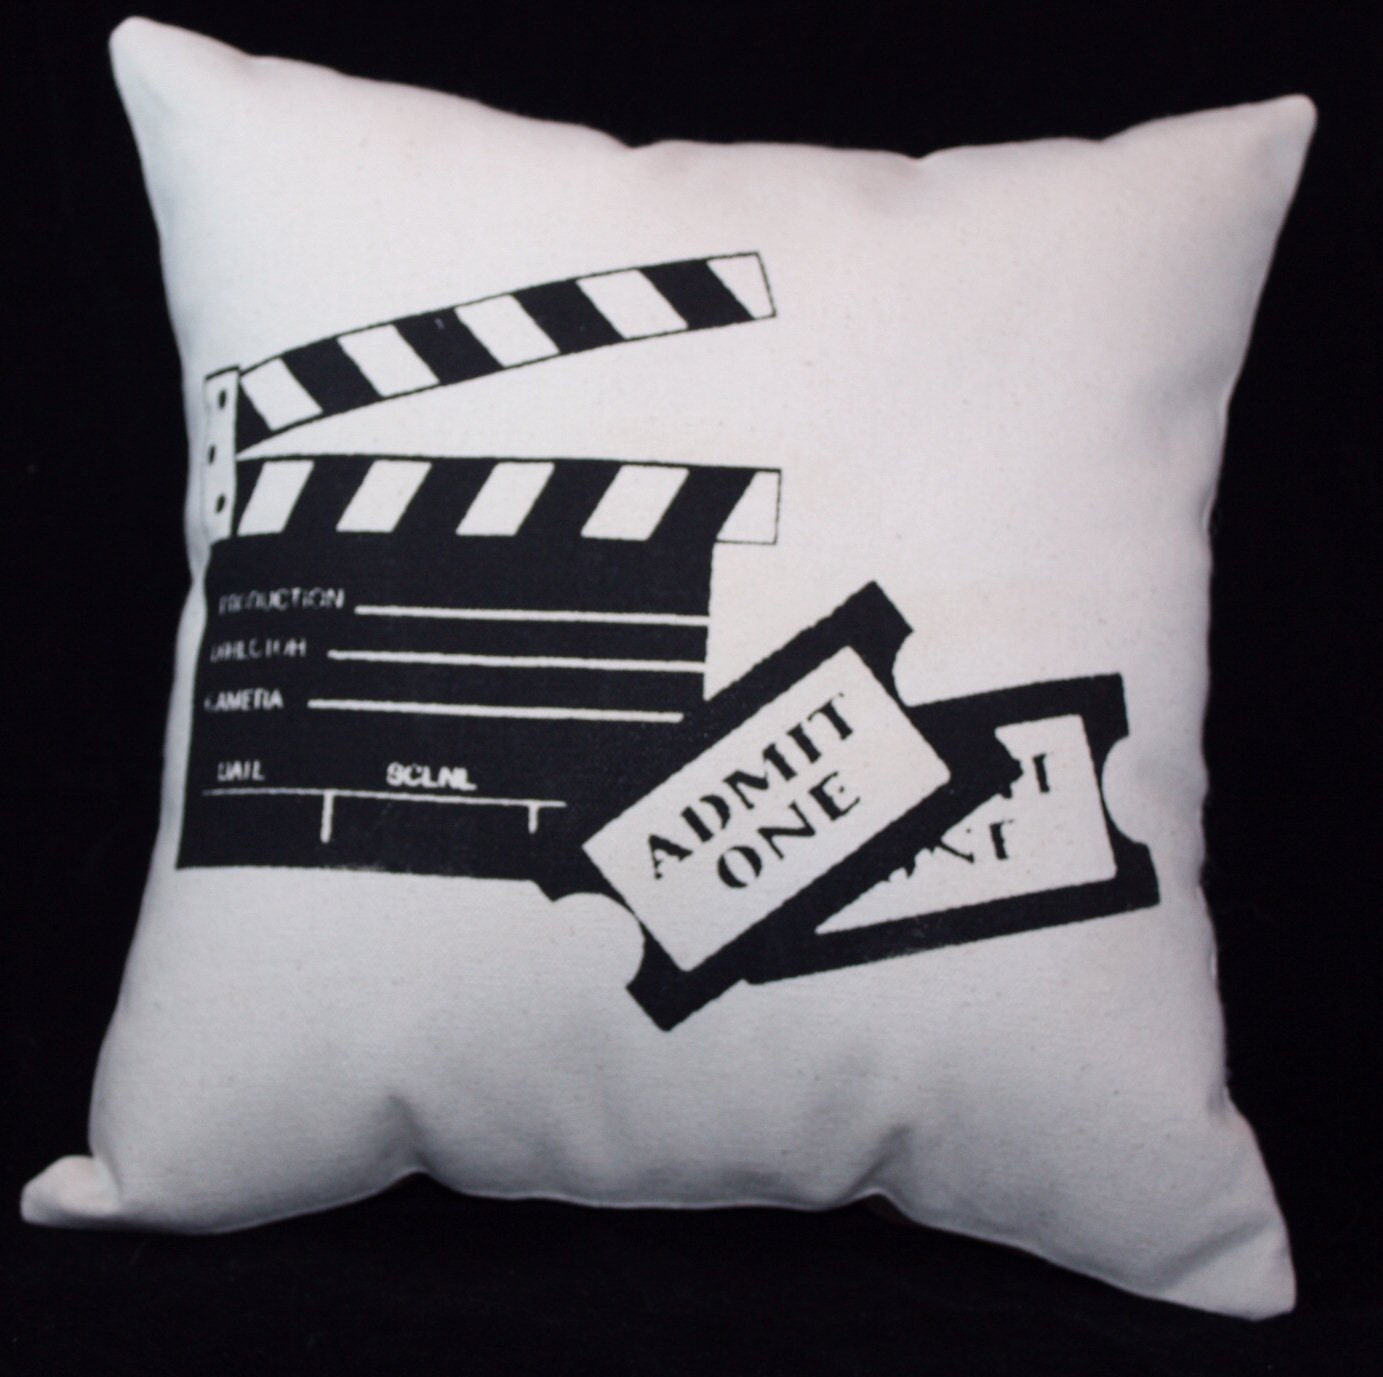 27 Cool Basement Home Theater Ready To Entertain: Home Theater Theatre Movie Pillow 12x12 MOVIE By